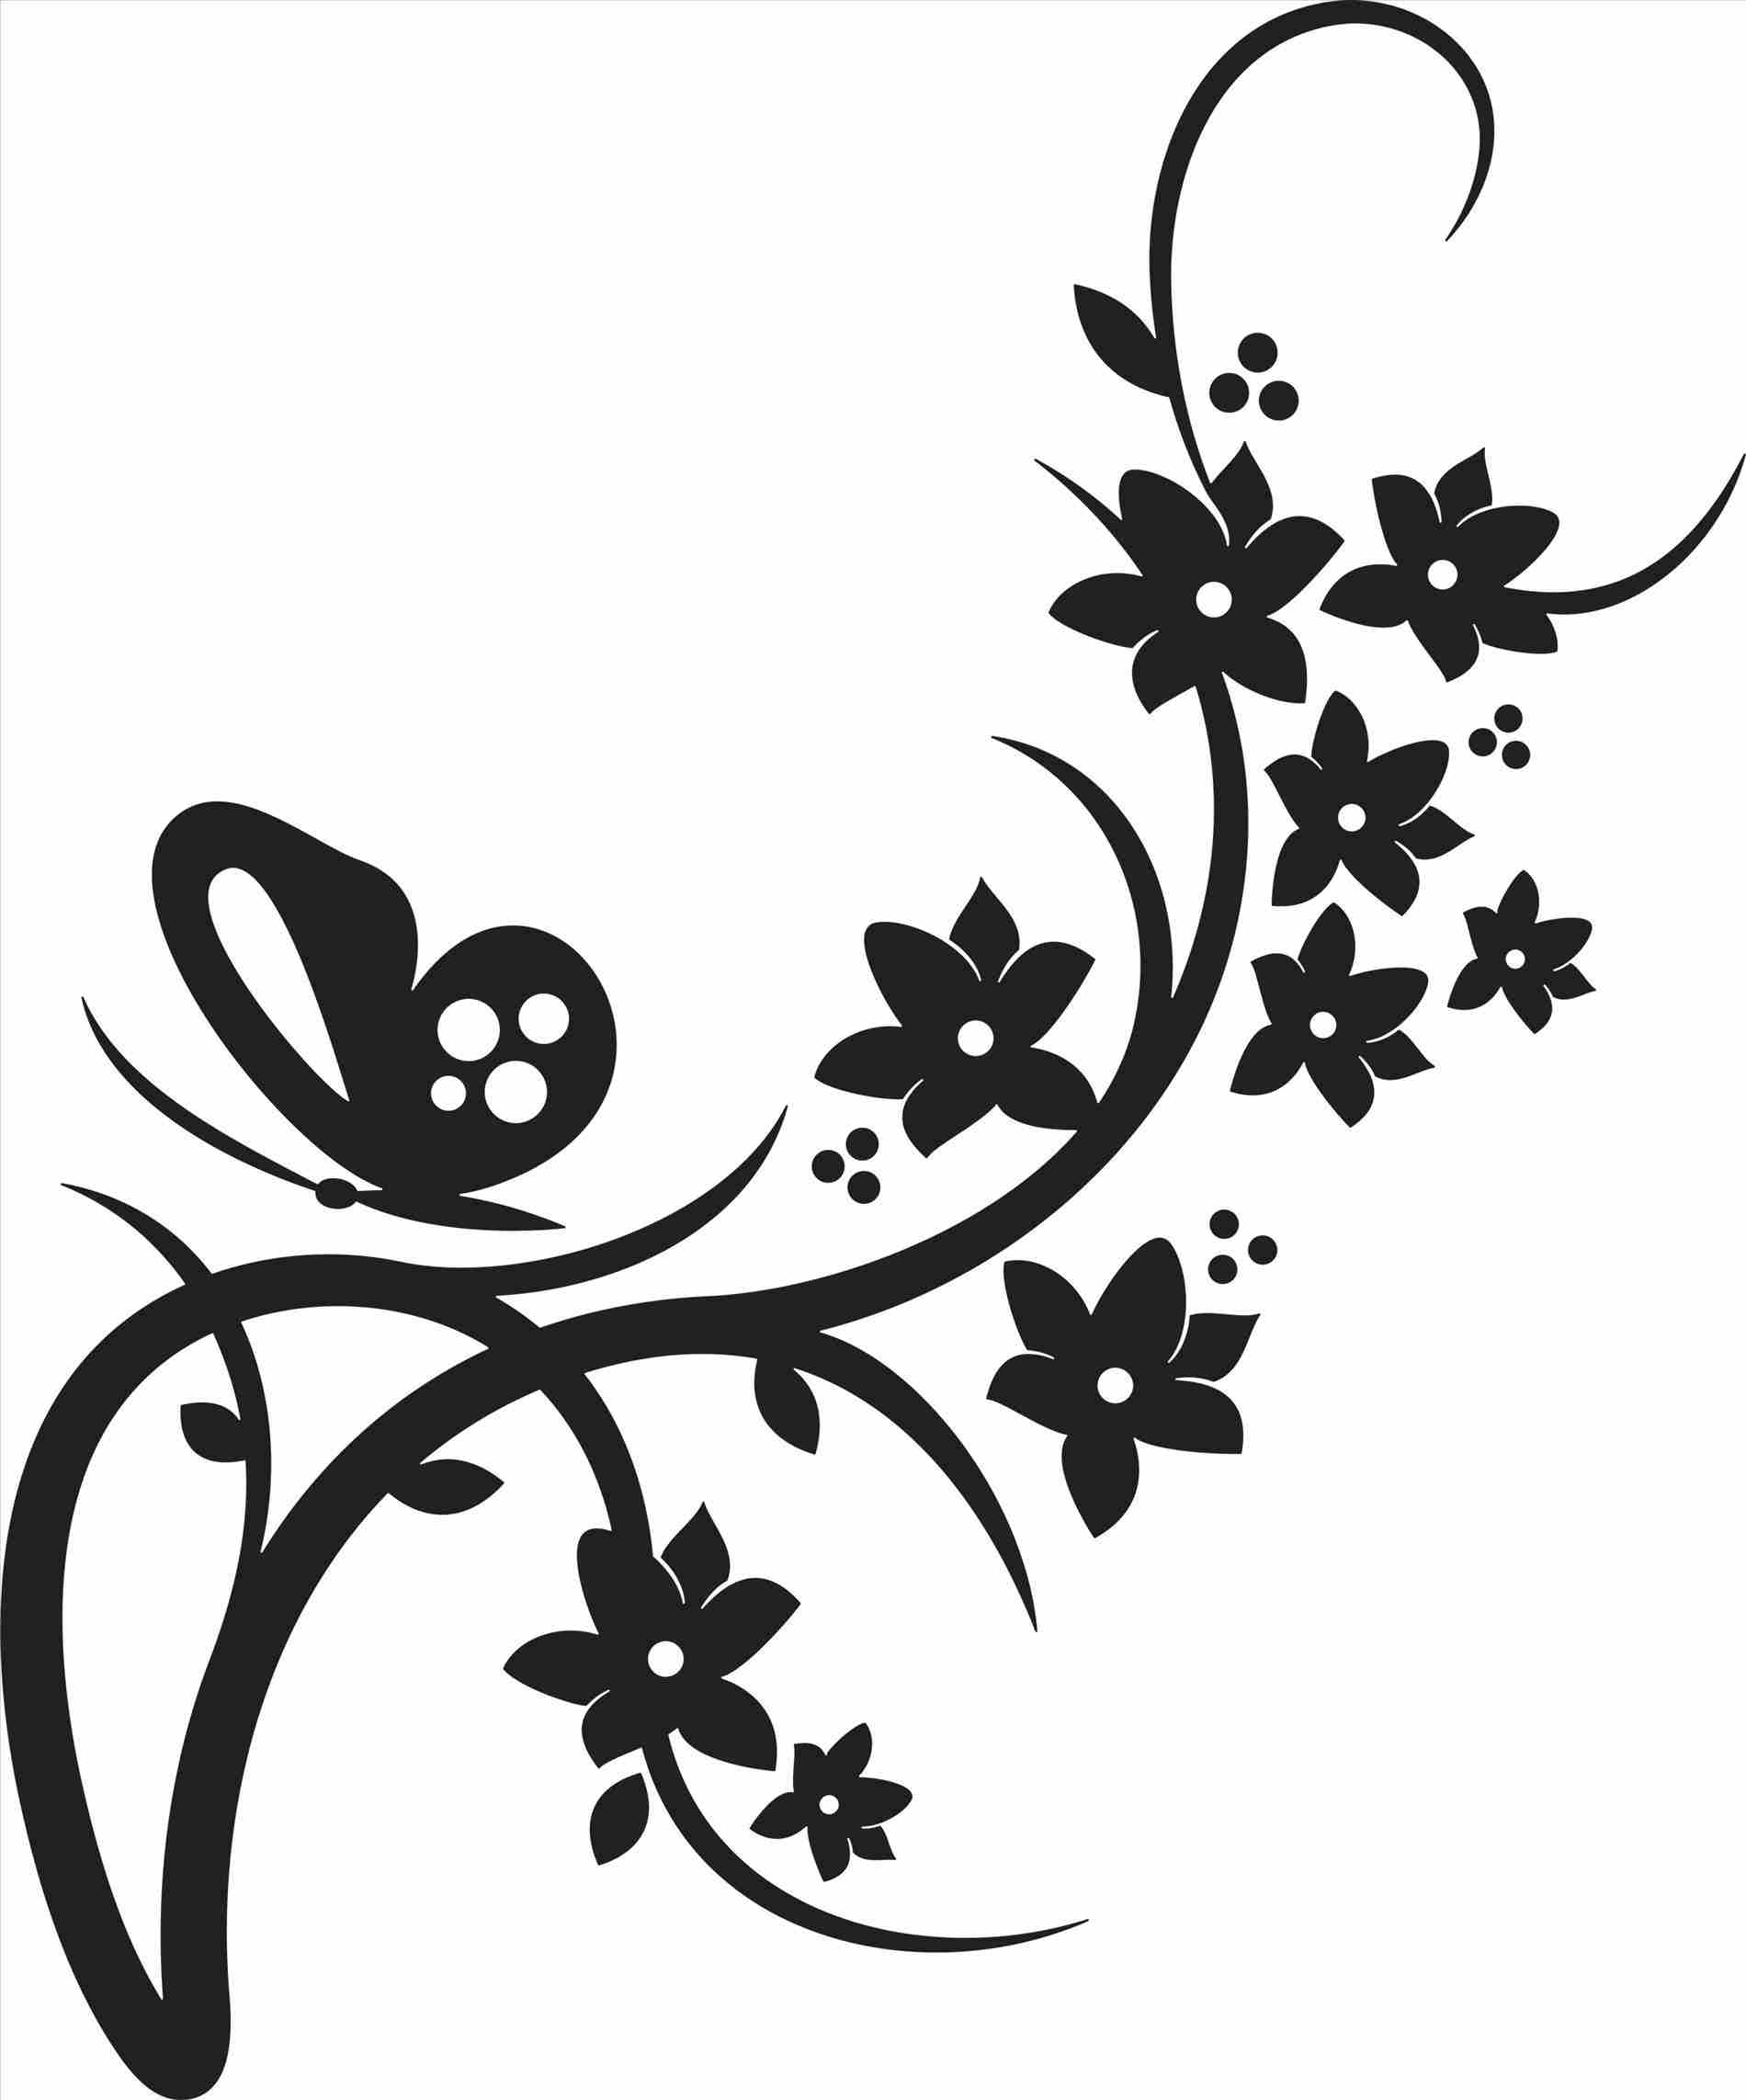 1900x2285 Flower Border Clip Art Black And White S Free Download Sun Wiki